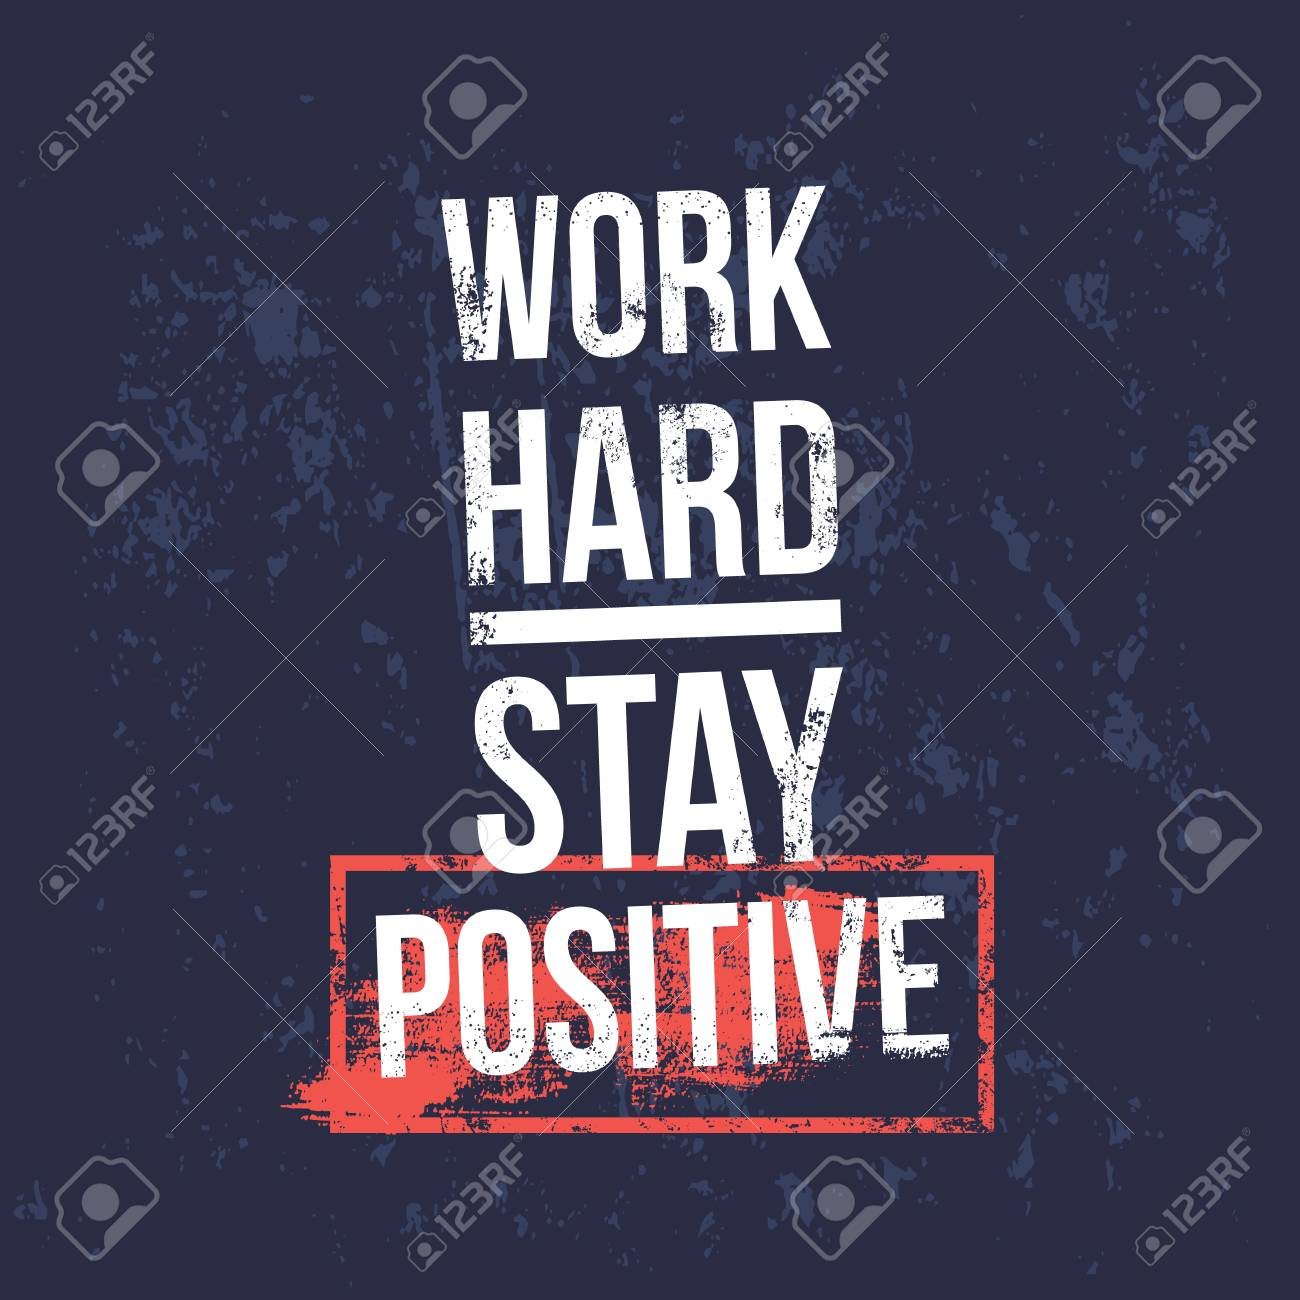 work hard stay positive motivational quotes vector design background